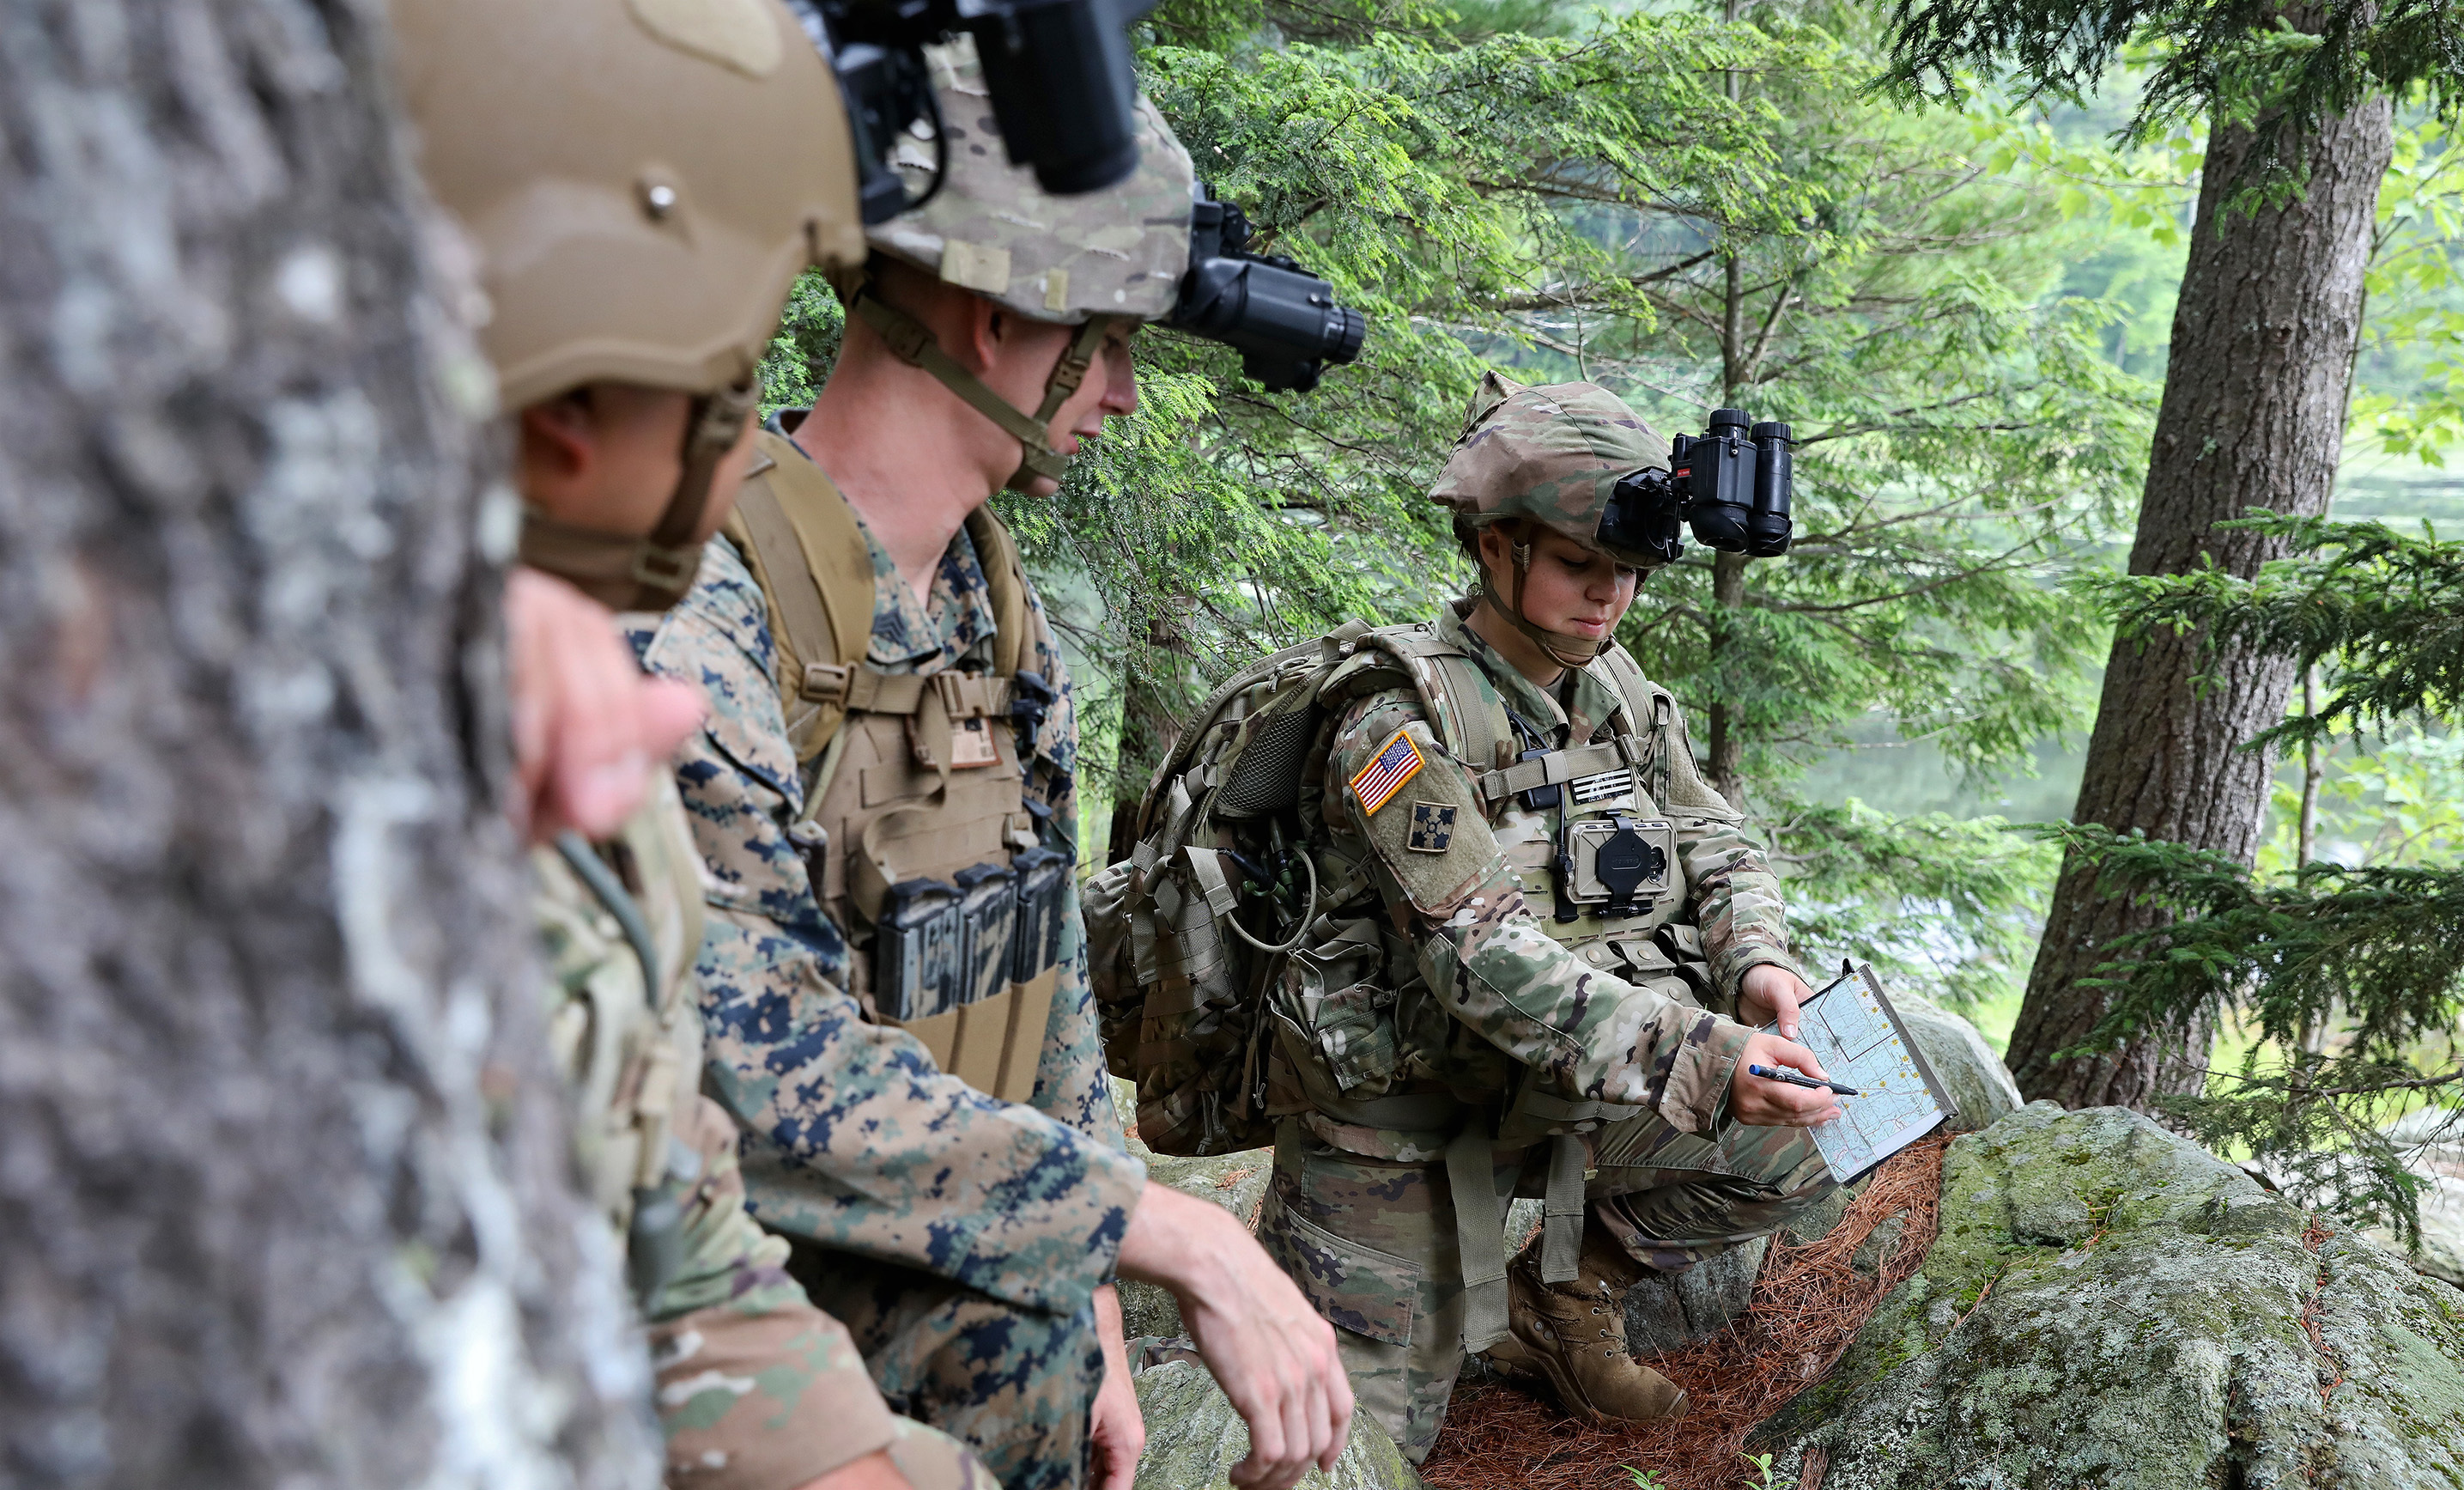 Sgt. Gabrielle Hurd, 237th Military Police Company, New Hampshire Army National Guard, shows her team the route they will take during an Enhanced Night Vision Goggle-Binocular Soldier Touchpoint, July 10-12, 2019. The Adaptive Squad Architecture device being developed by Program Executive Office Soldier will power and share data with gear such as the ENVG-B. (Army)